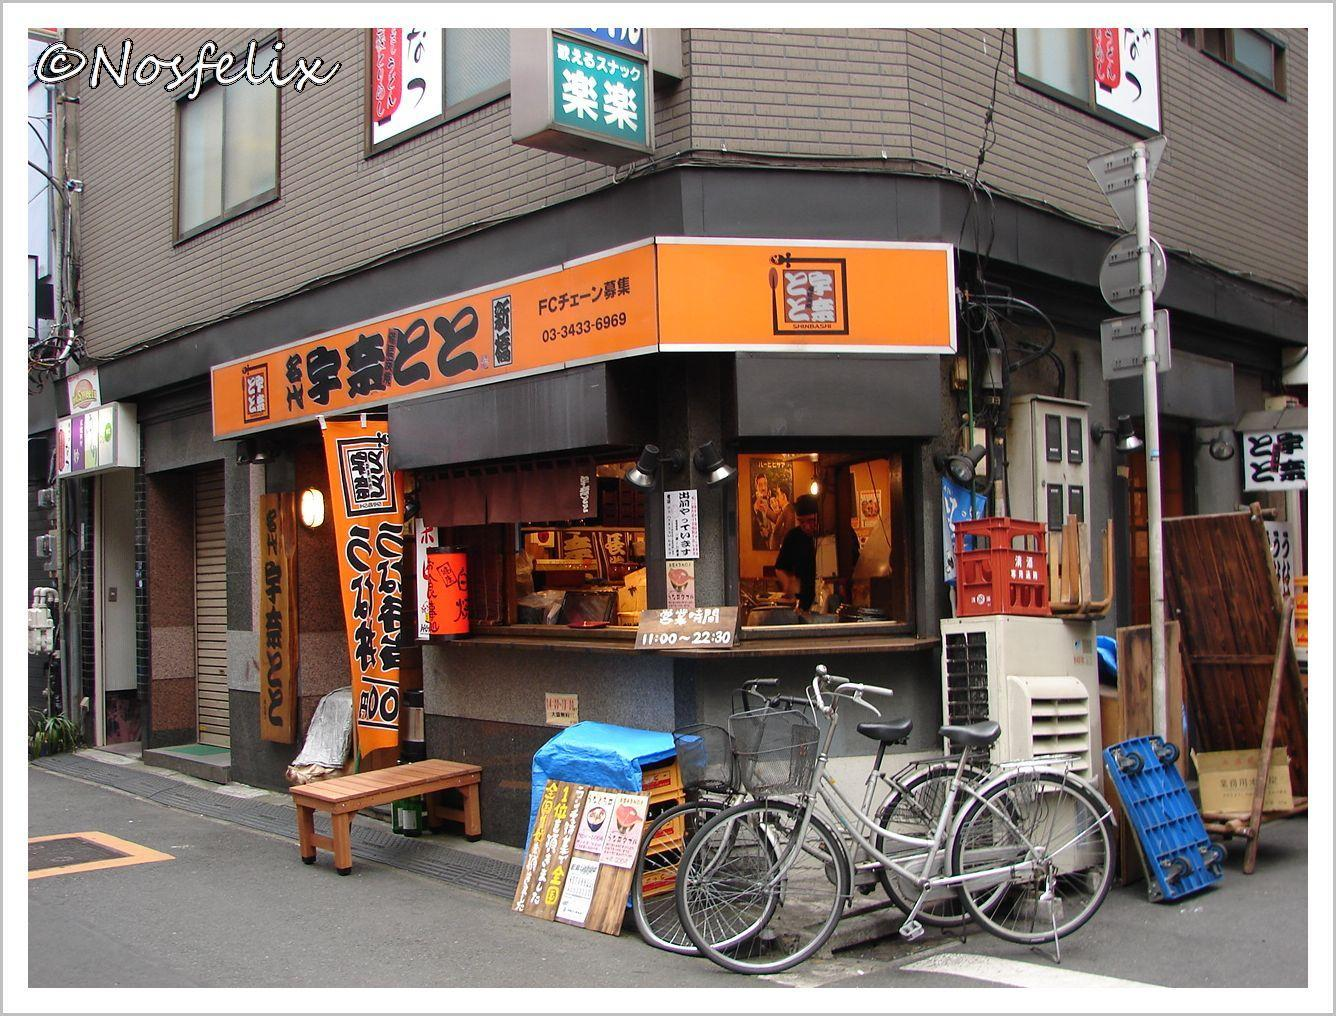 Restaurant Facade unadon | eating out in tokyo : cheapest lunch restaurants in tokio